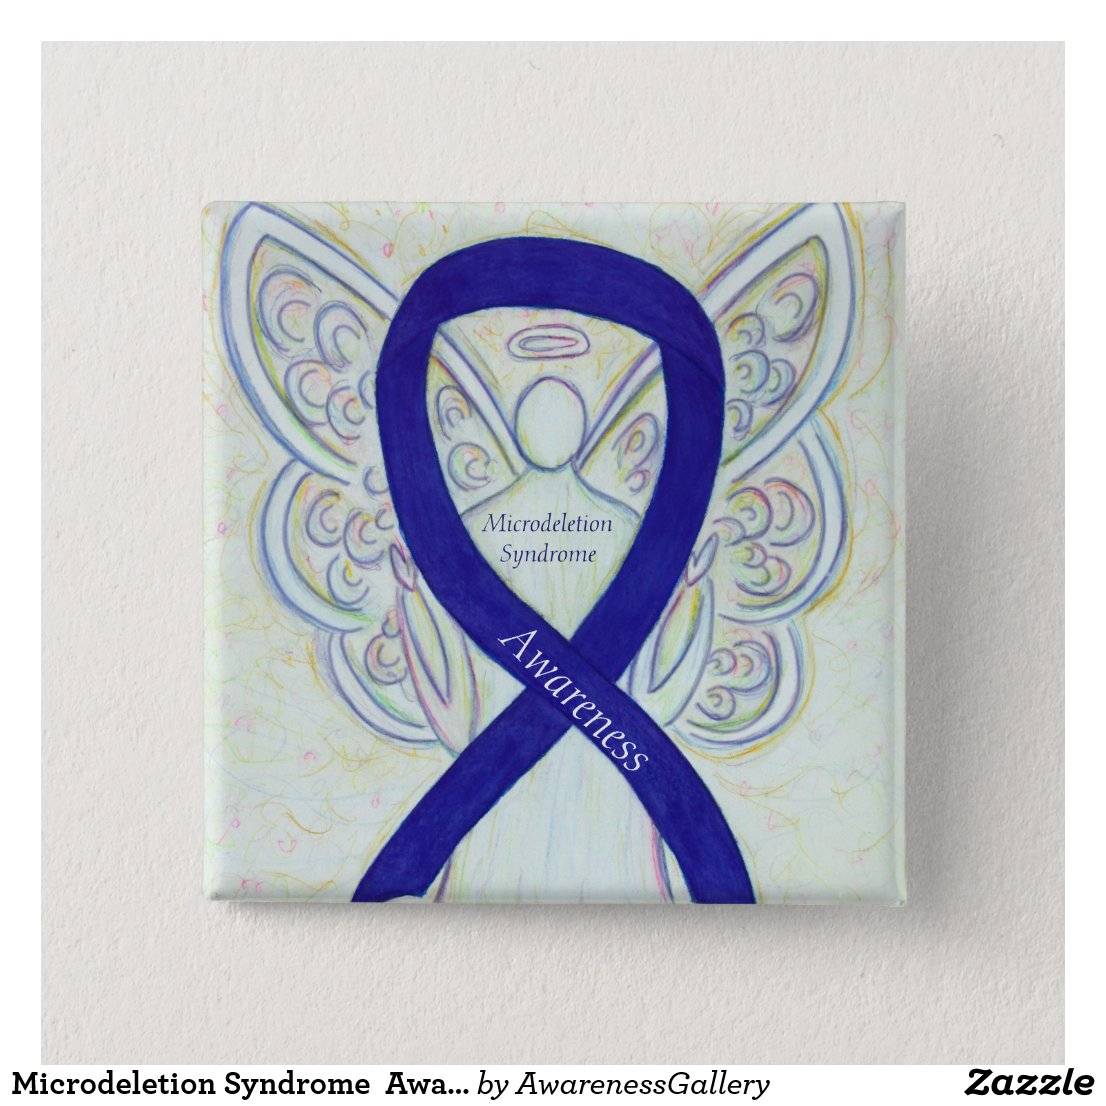 Microdeletion Syndrome Awareness Ribbon Pin